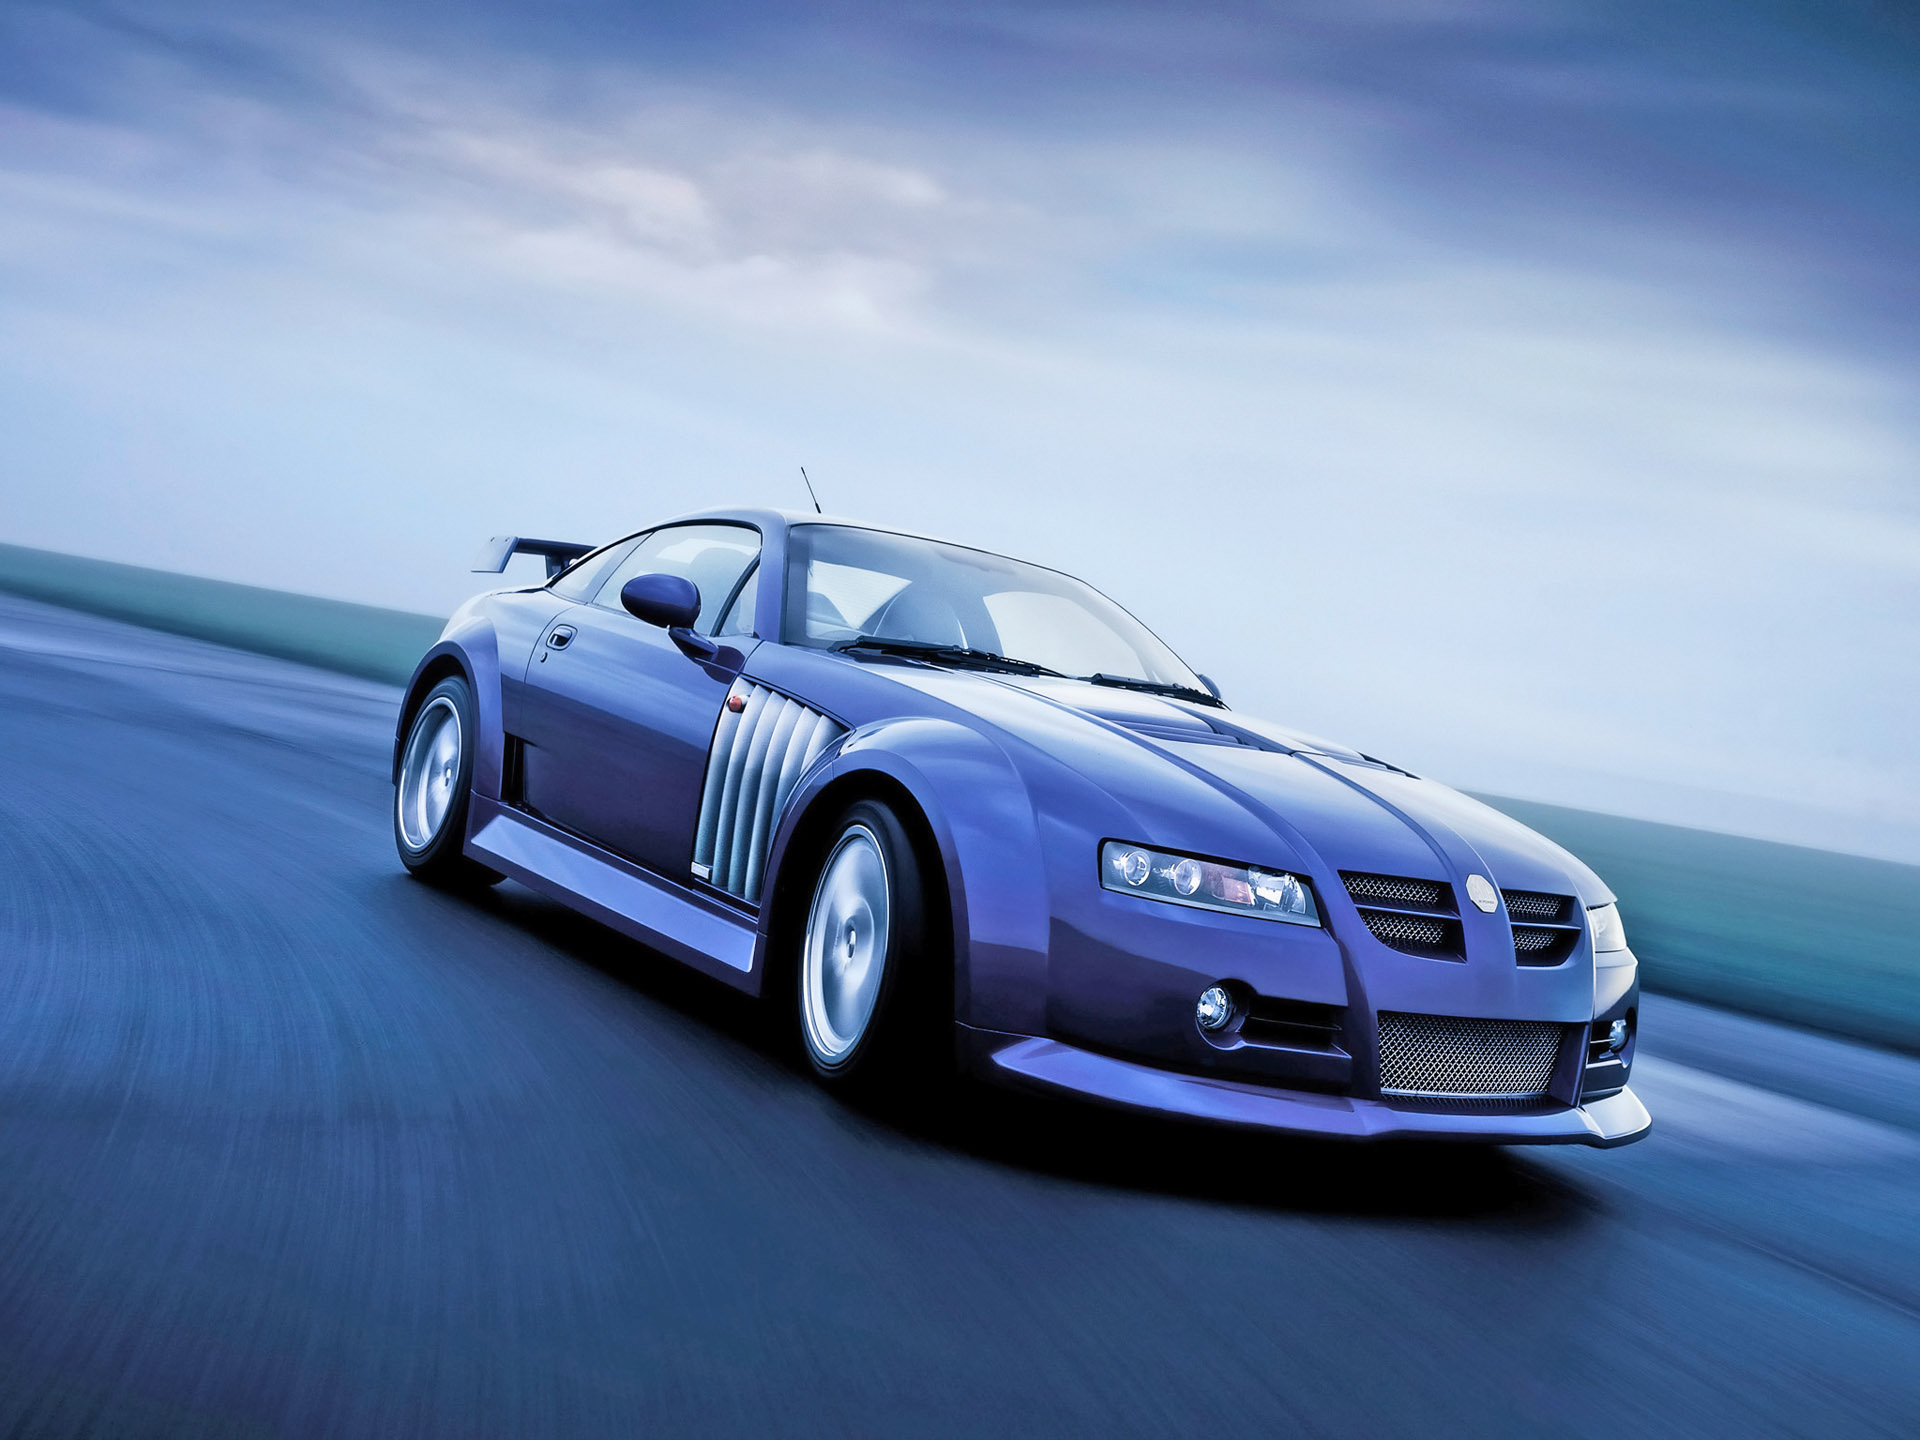 Photo of MG XPower #5924. Image size: 1920 x 1440. Upload date: 2003